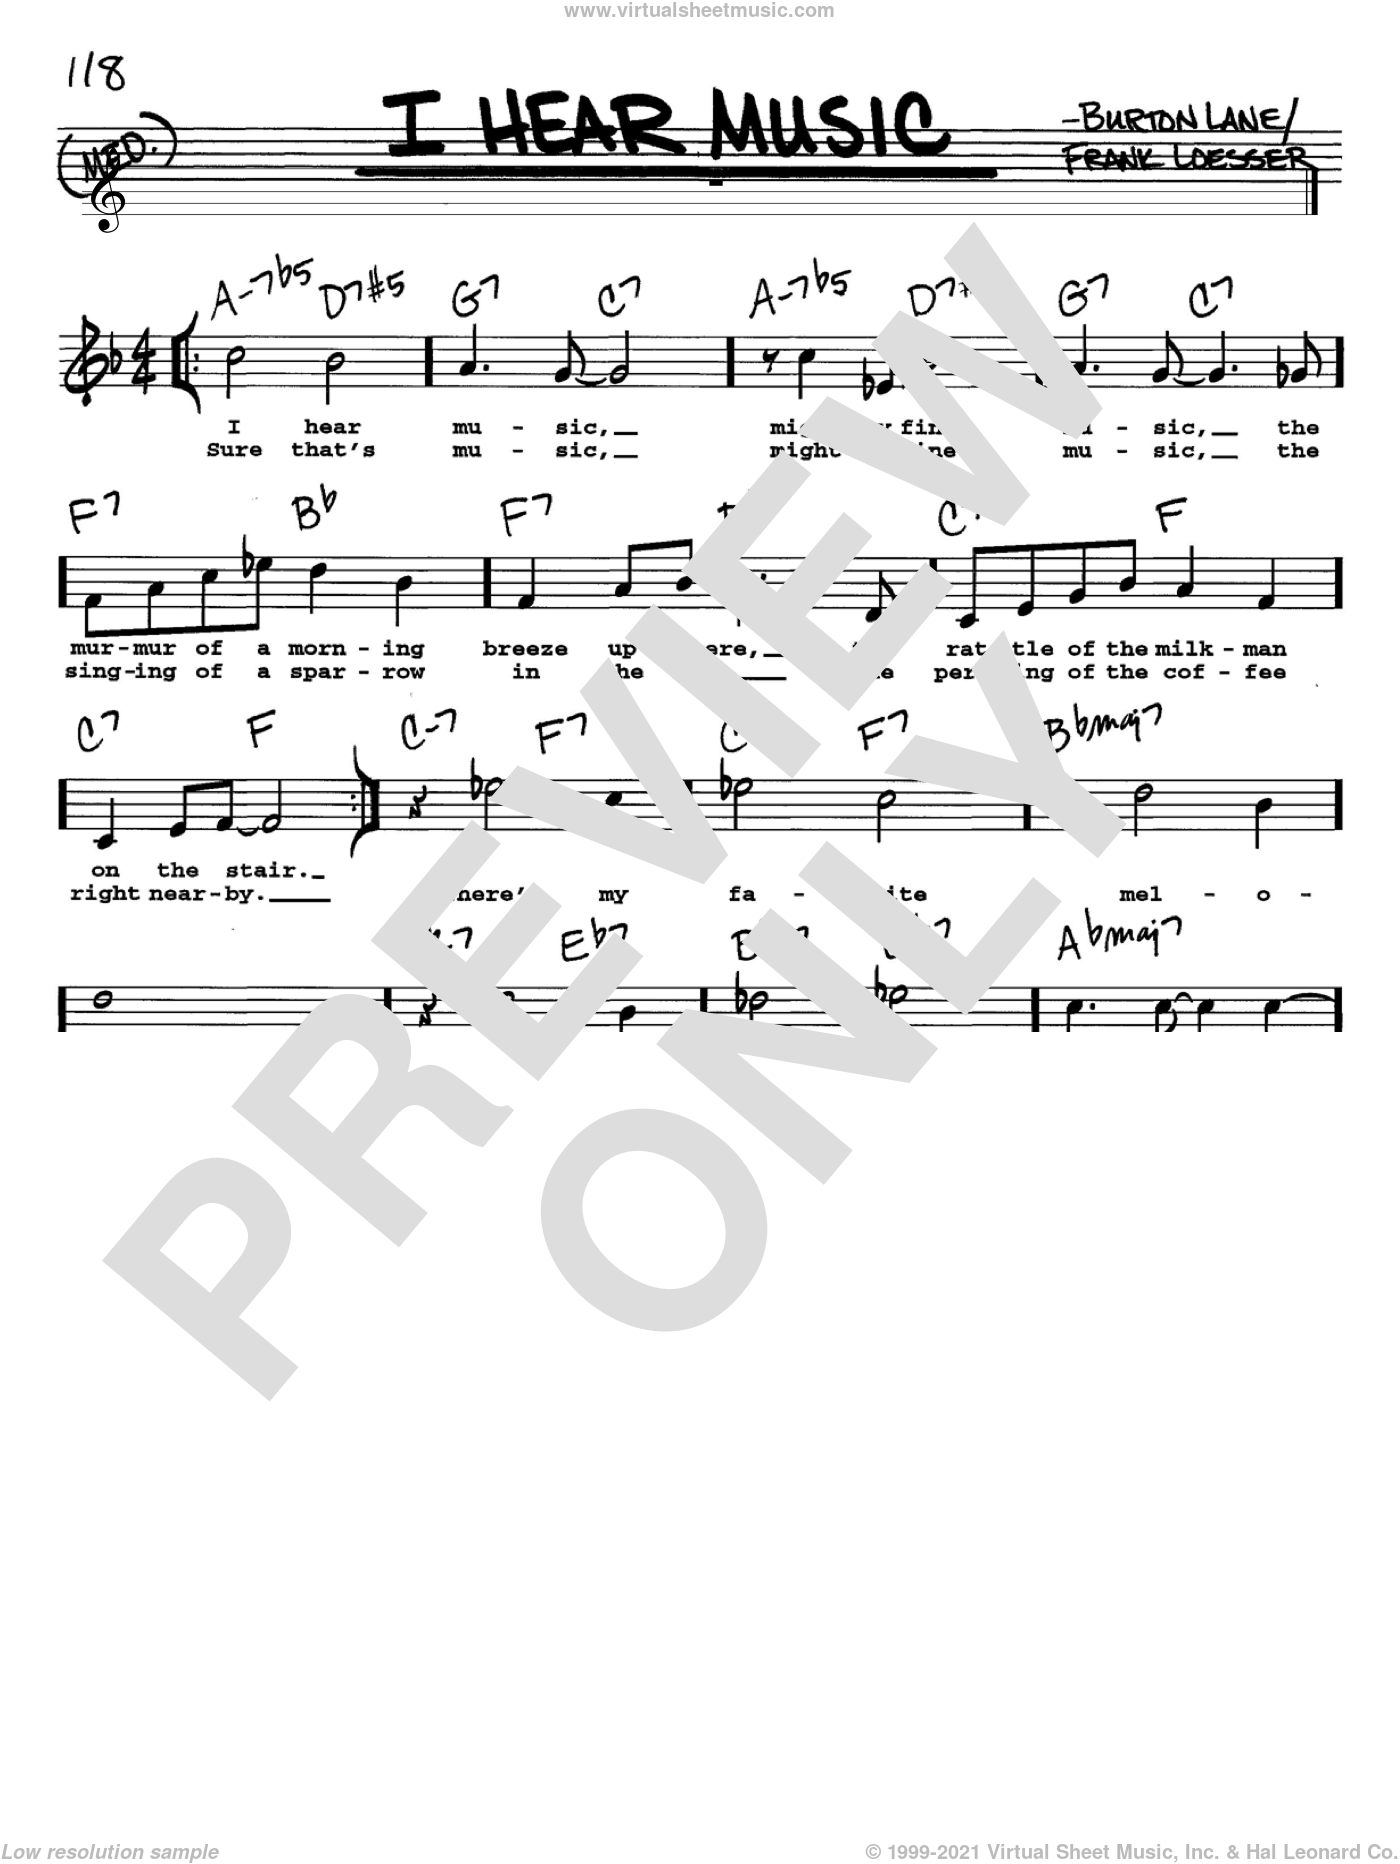 I Hear Music sheet music for voice and other instruments (Vocal Volume 2) by Burton Lane and Frank Loesser. Score Image Preview.